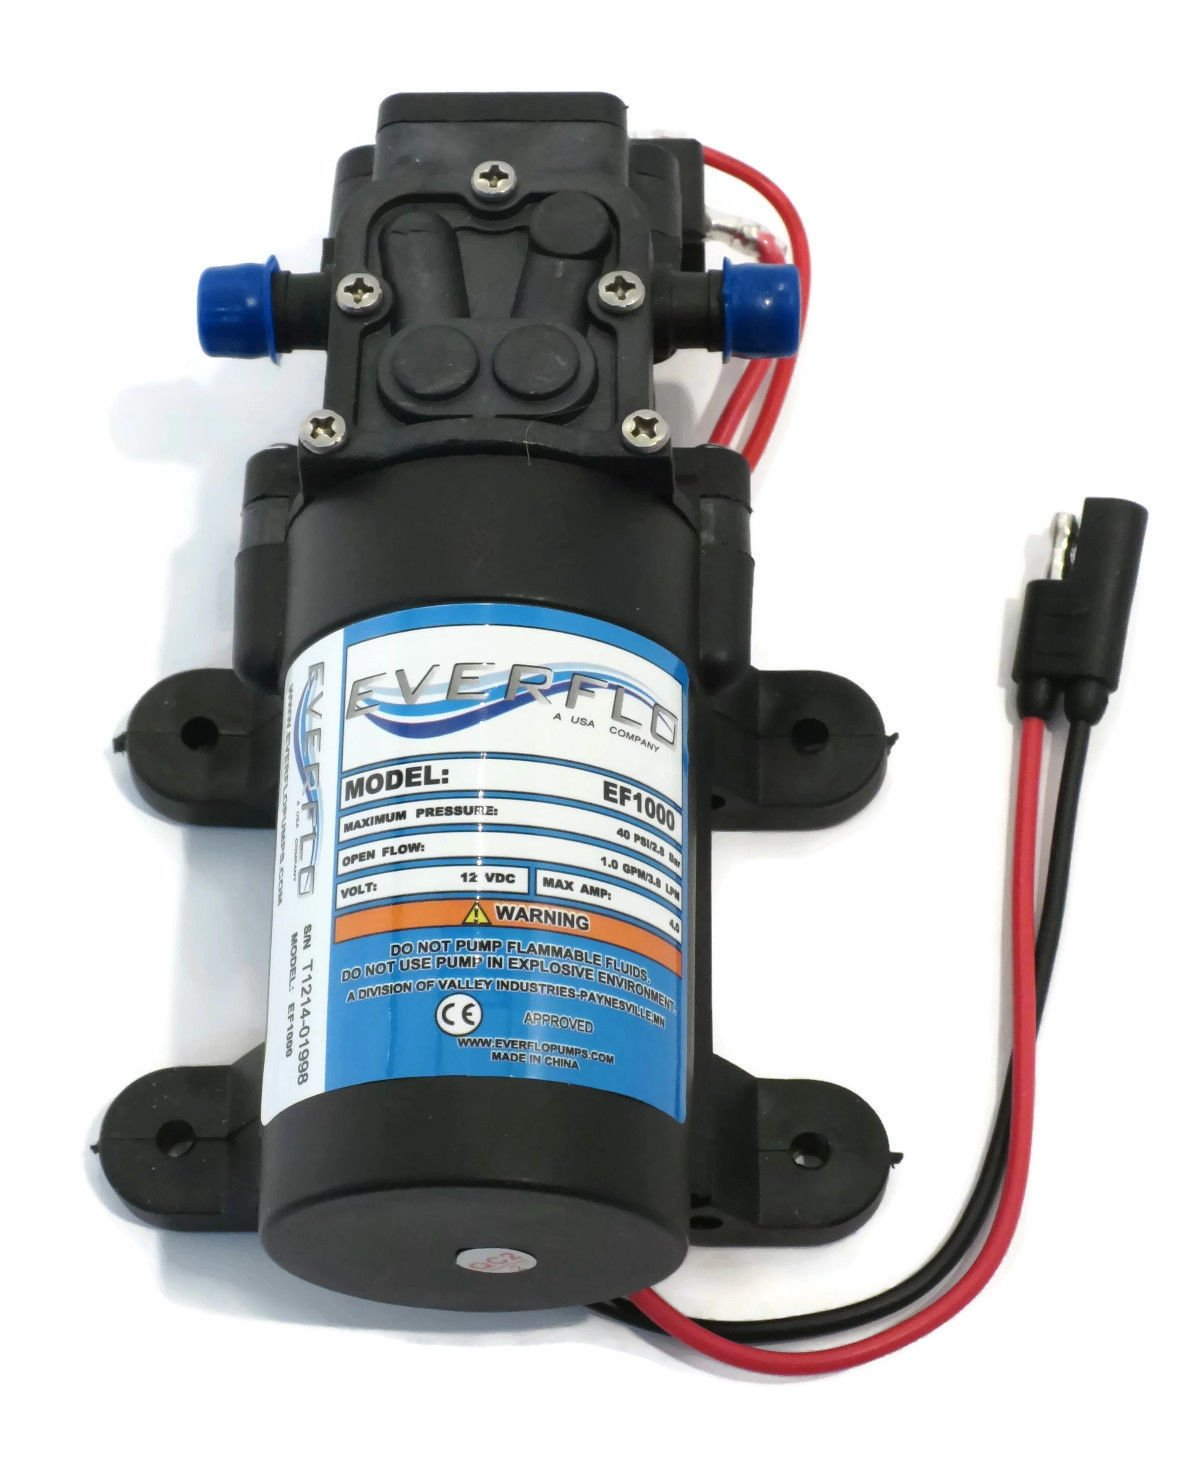 New 1.0 GPM 40 psi 12 Volt Diaphragm ON Demand WATER PUMP w/ Wire Power Harness by The ROP Shop by The ROP Shop (Image #3)